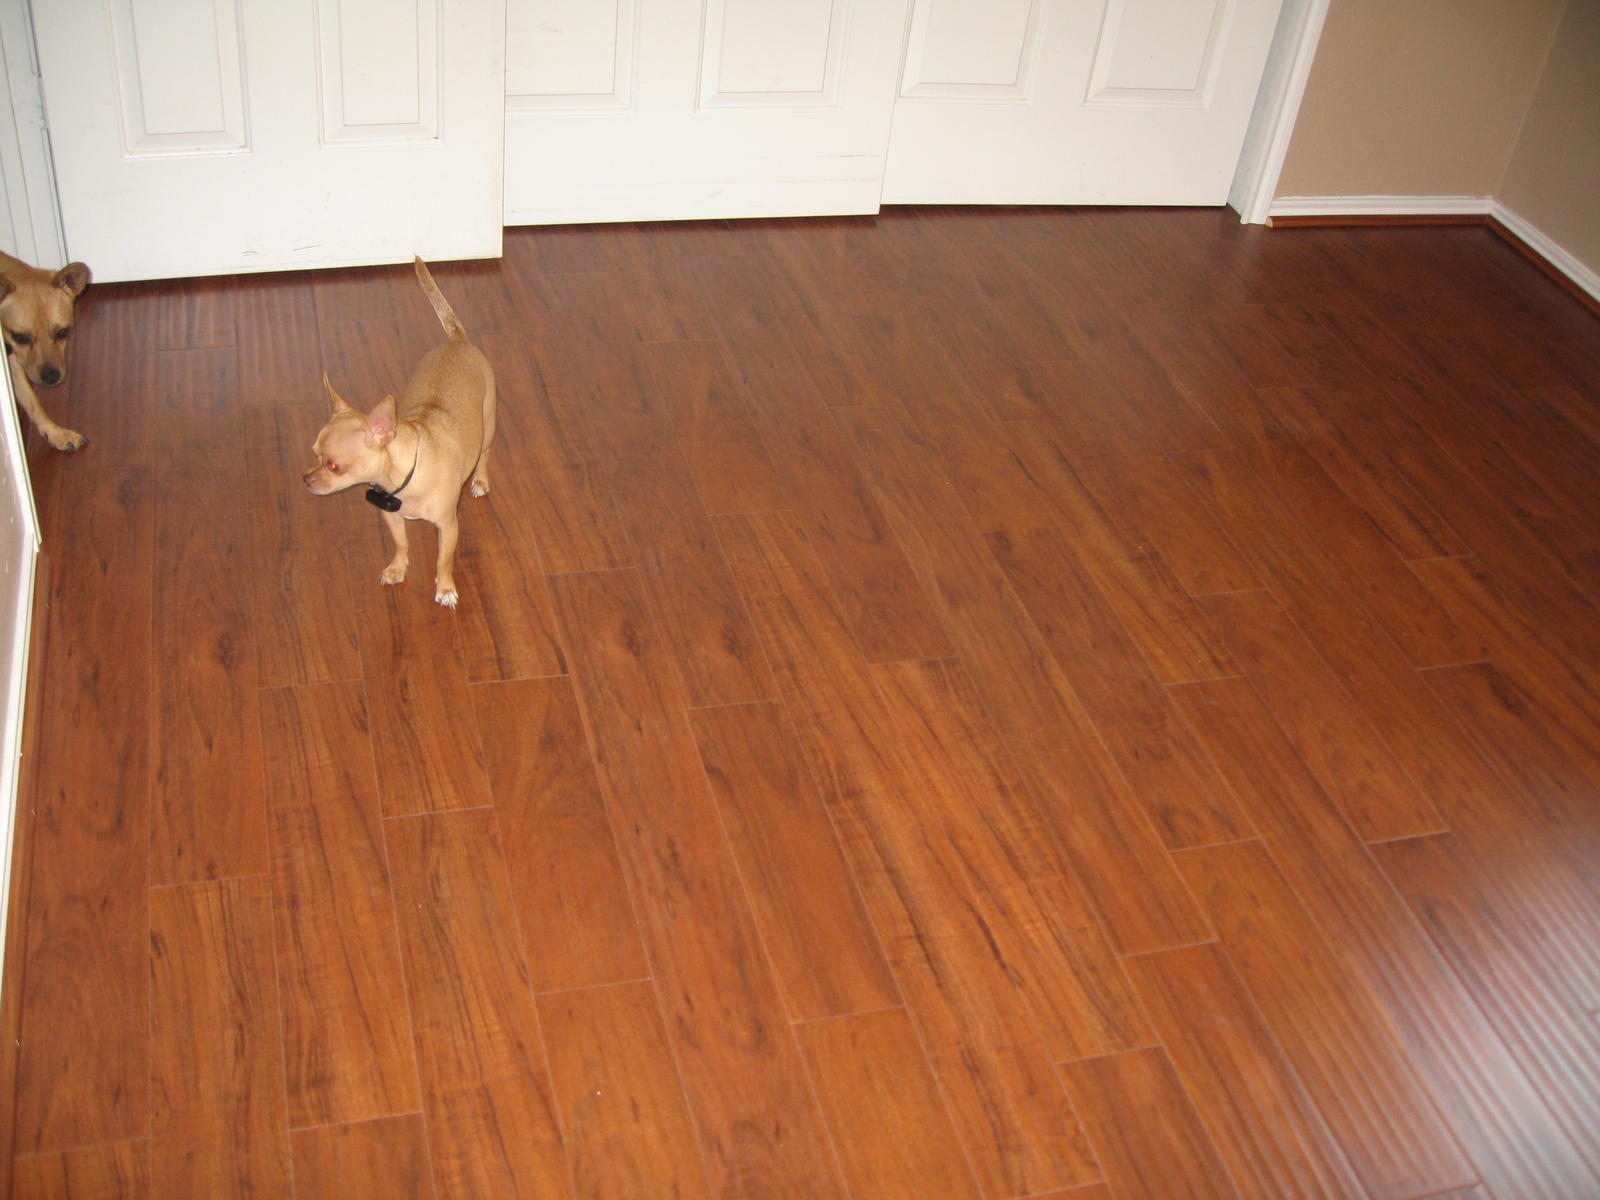 Laminate flooring best layout laminate flooring for Hardwood laminate